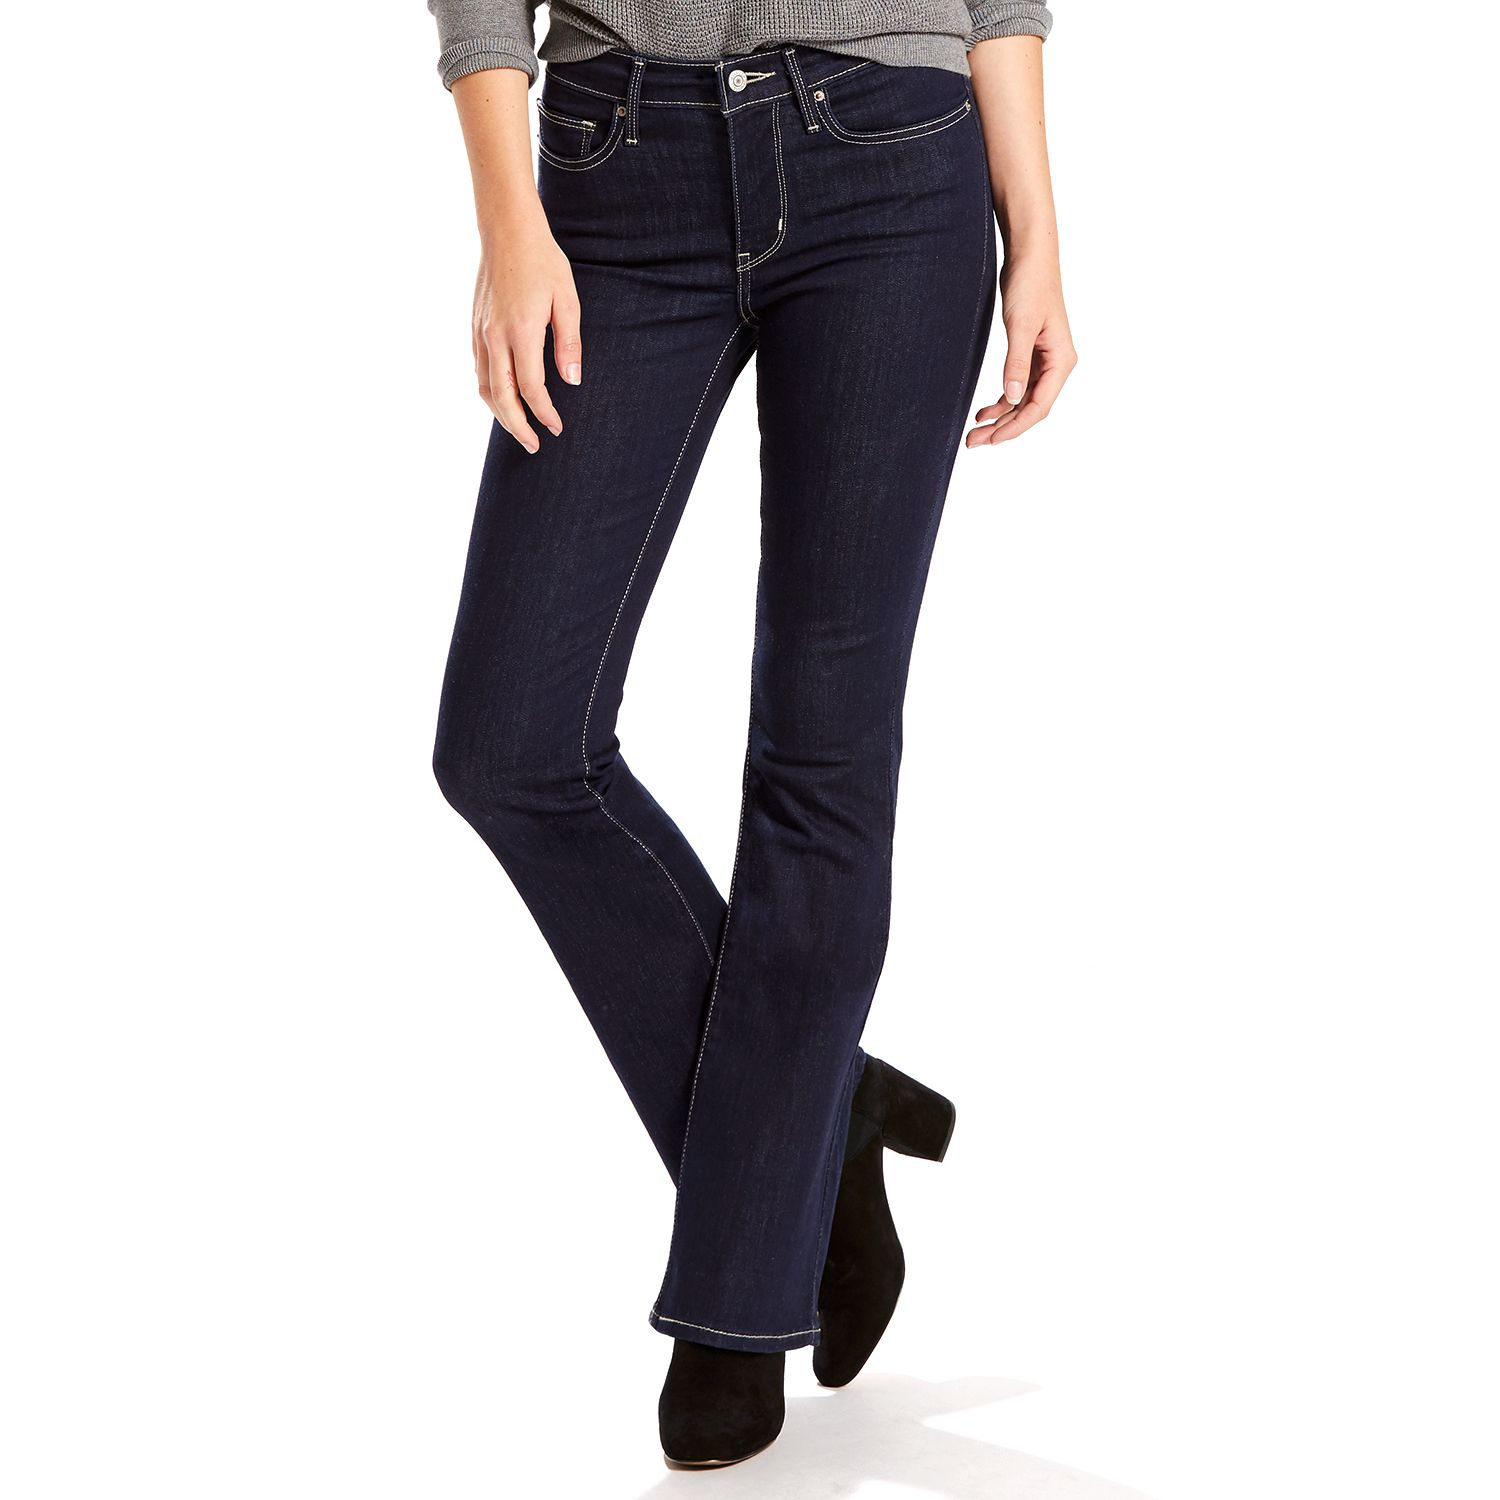 Womens Levis Slimming Bootcut Jeans